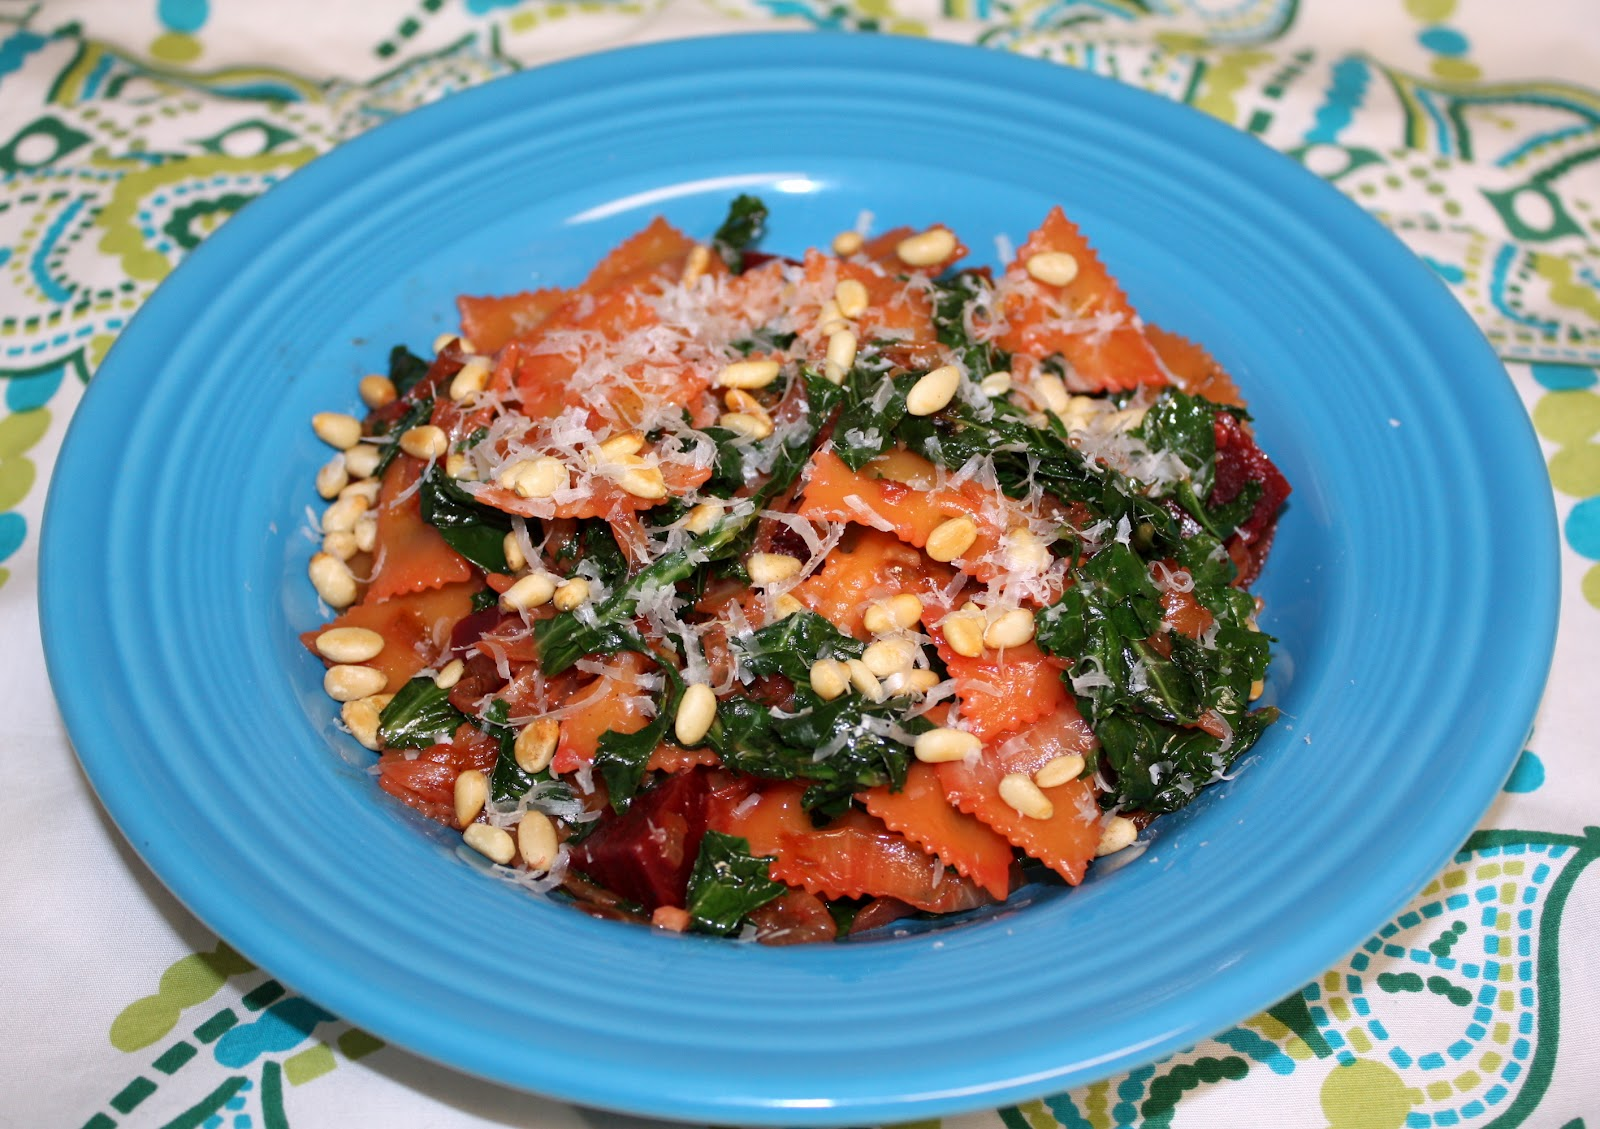 The Biggest Li'l Blog: Farfalle with Beets, Kale and Pine Nuts